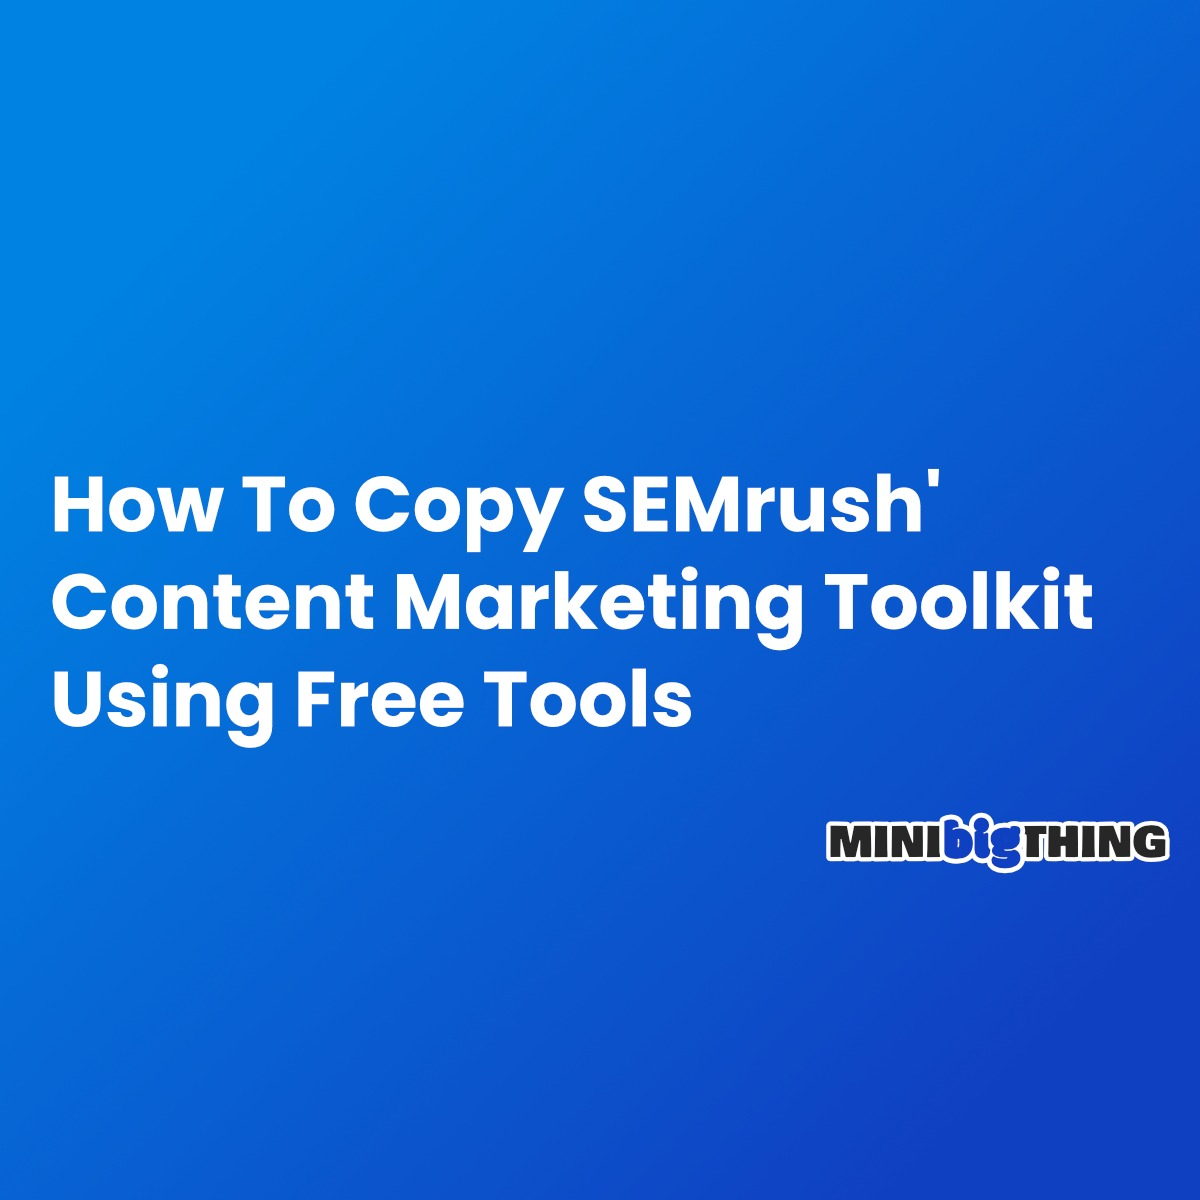 How To Copy Semrush' Content Marketing Toolkit Using Free Tools